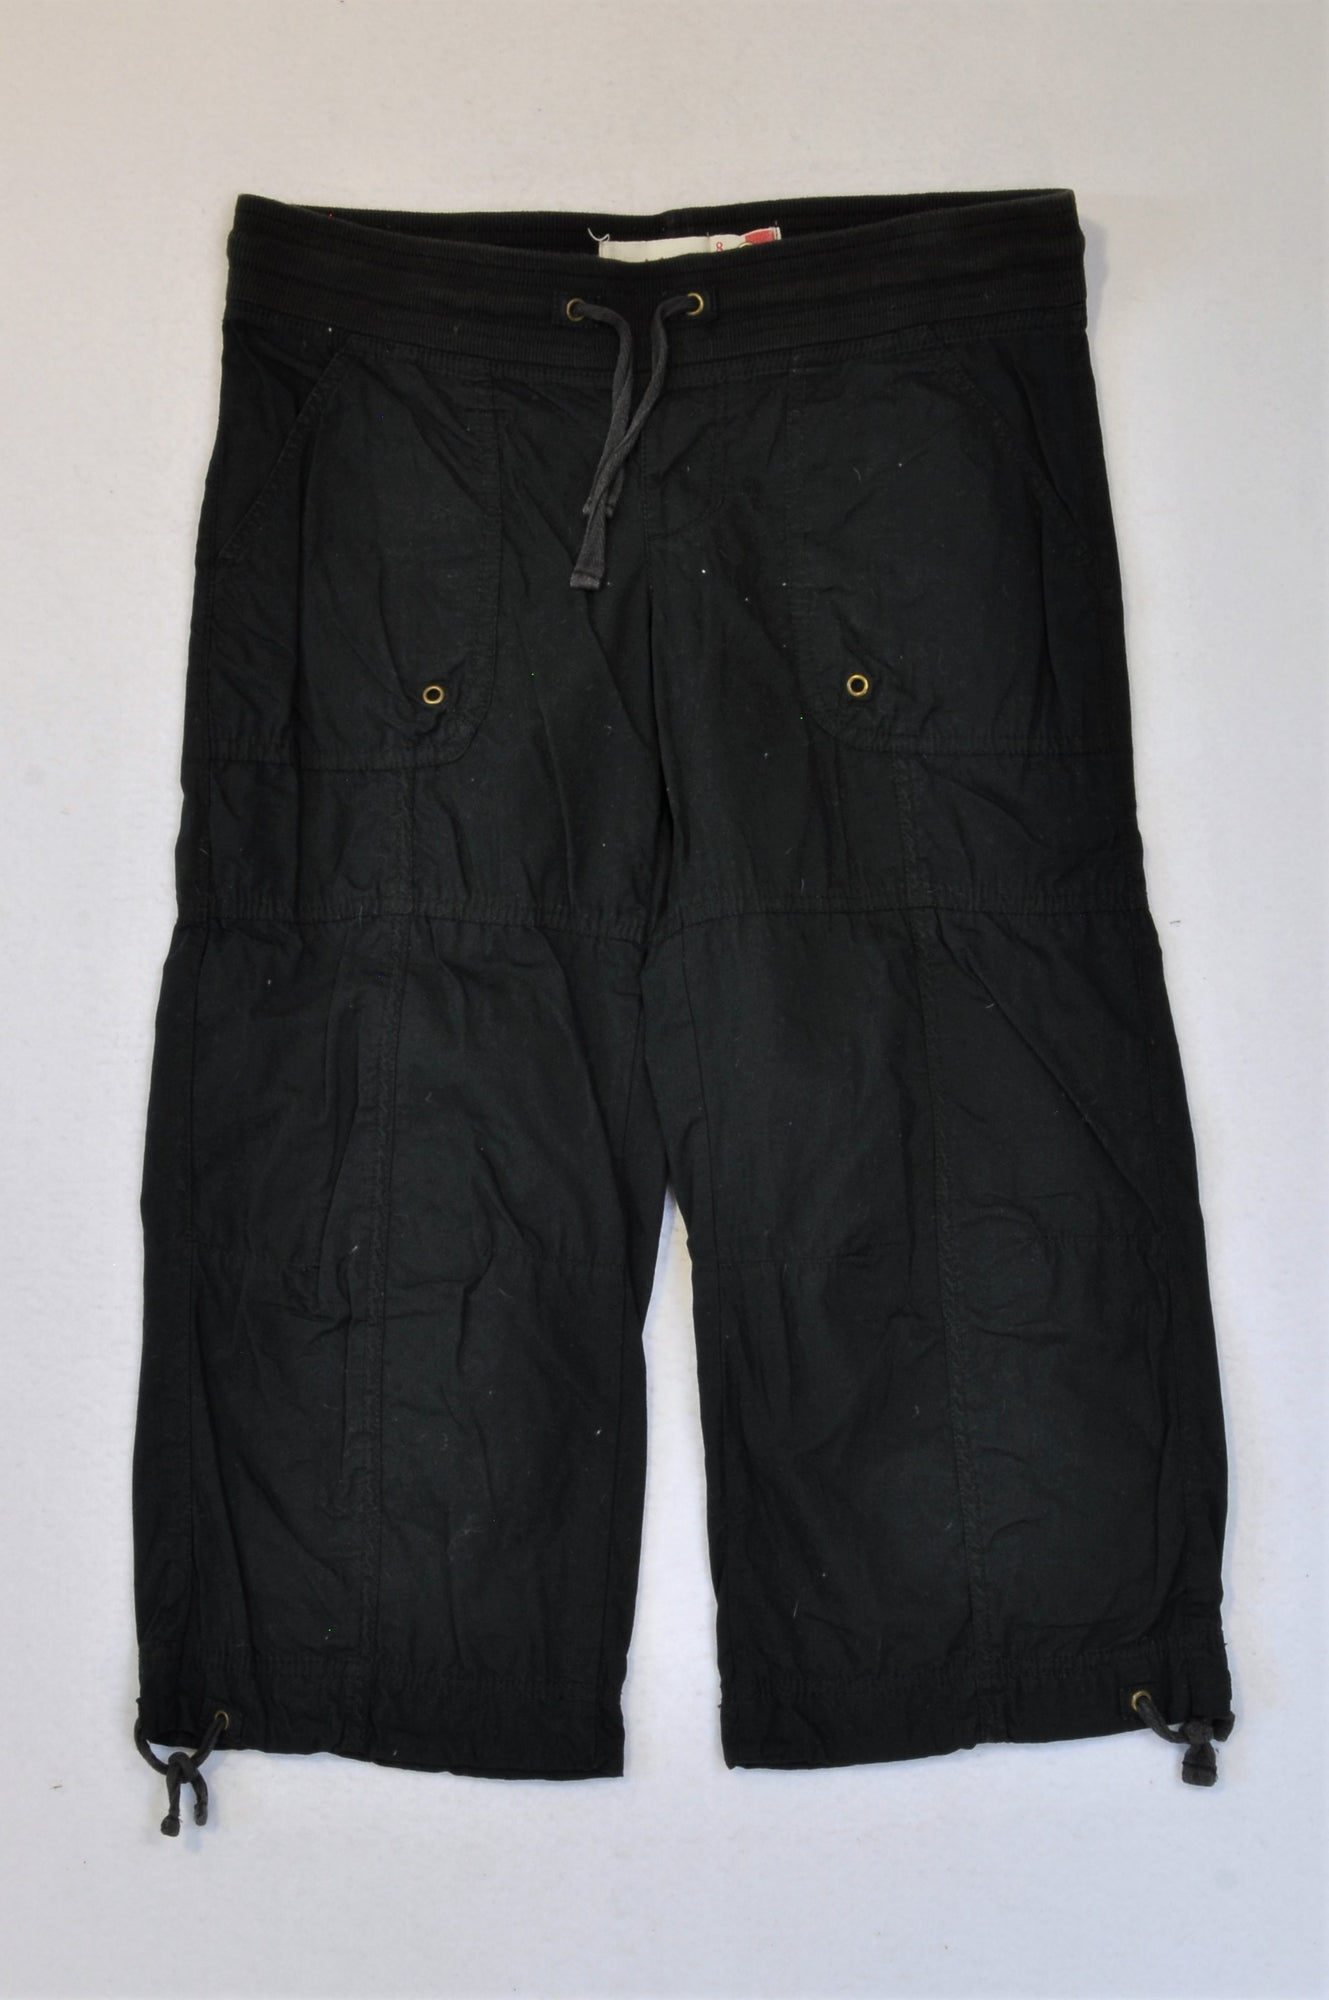 Pick 'n Pay Black Banded 3/4 Cargo Shorts Women Size 8